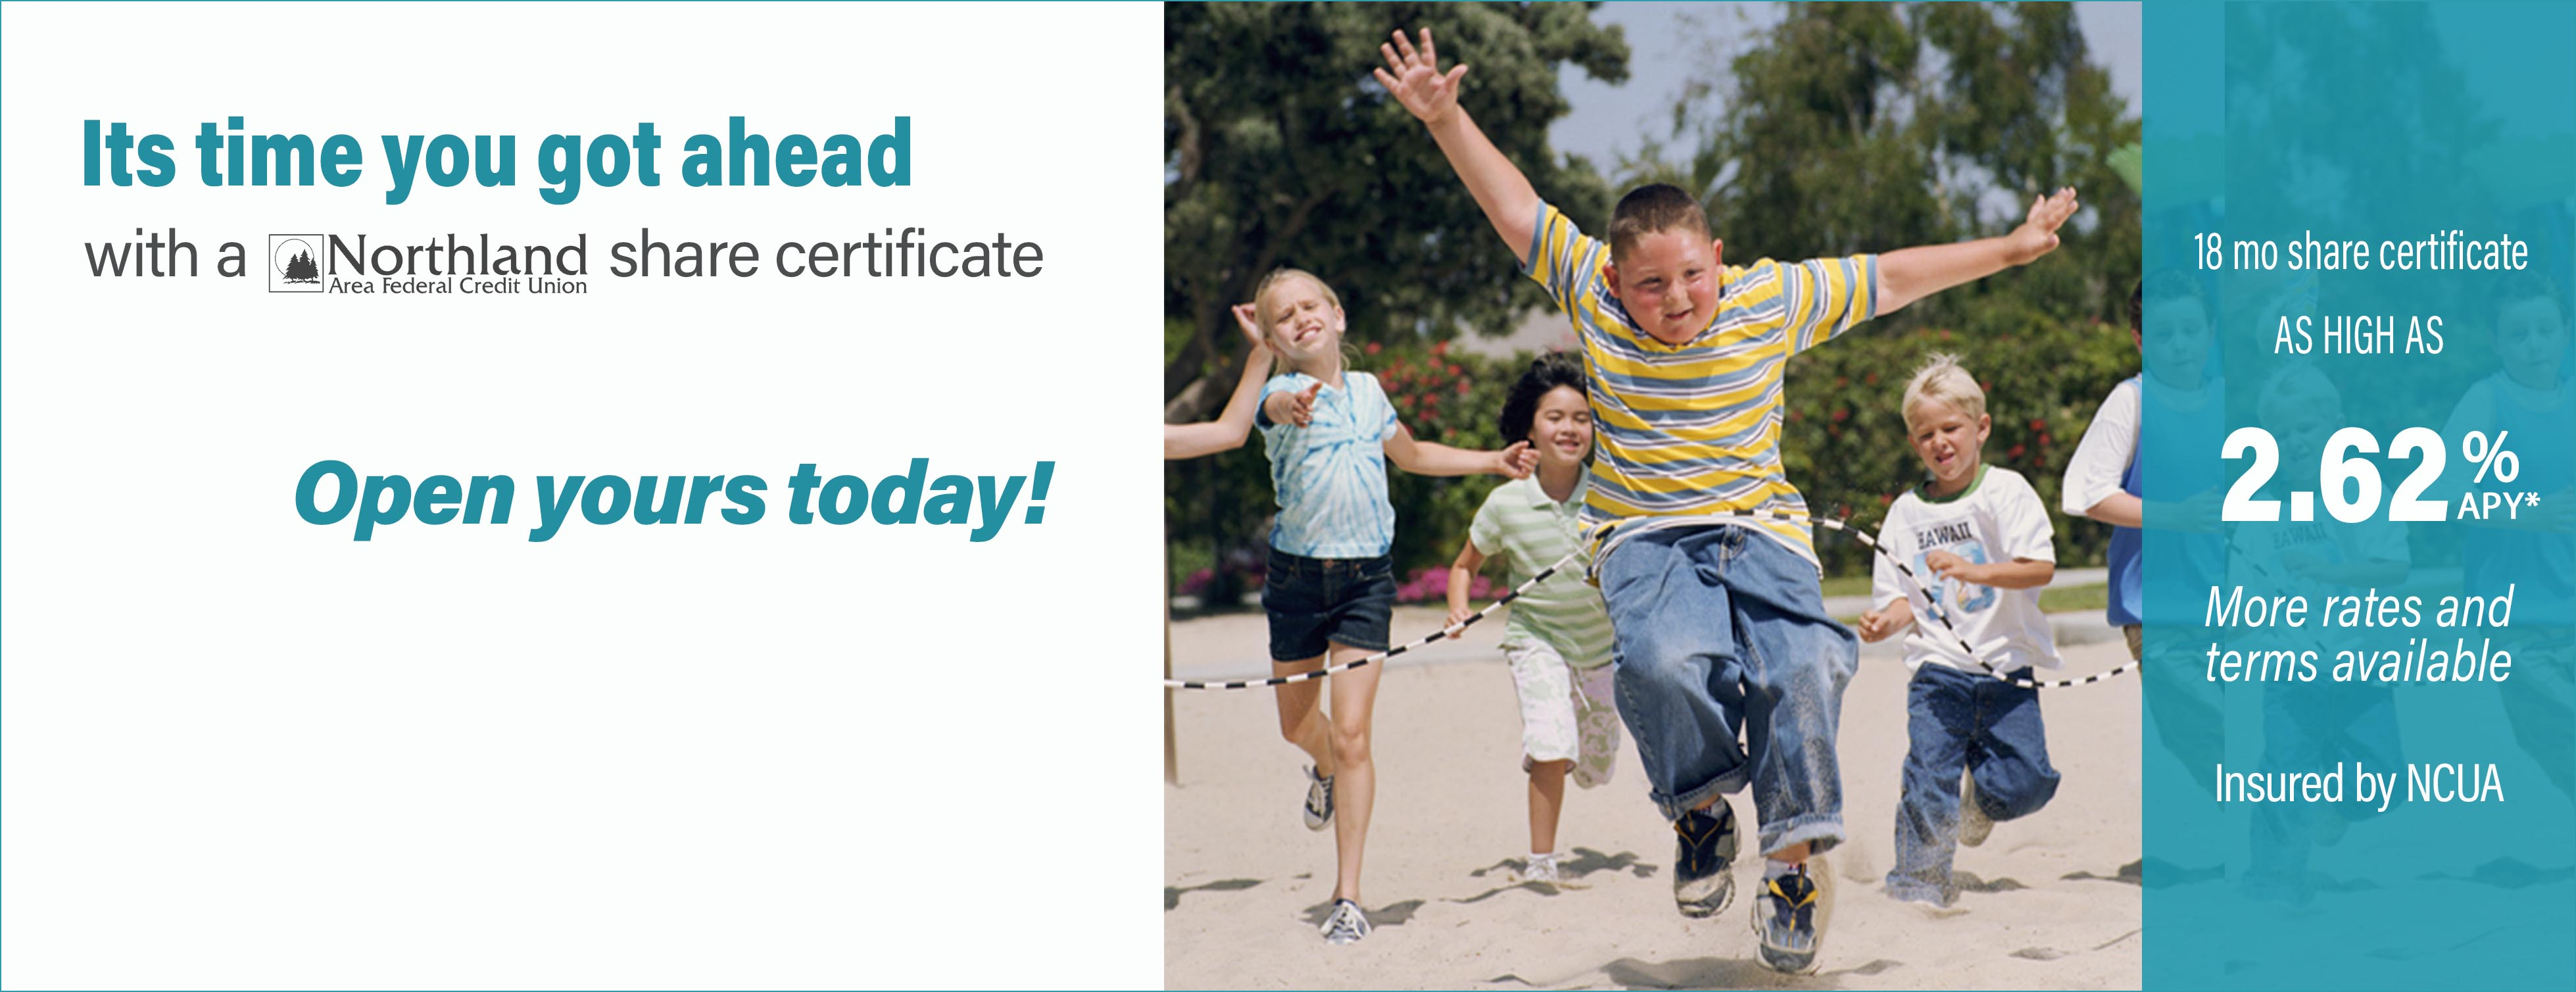 Its time you got ahead share certificate banner